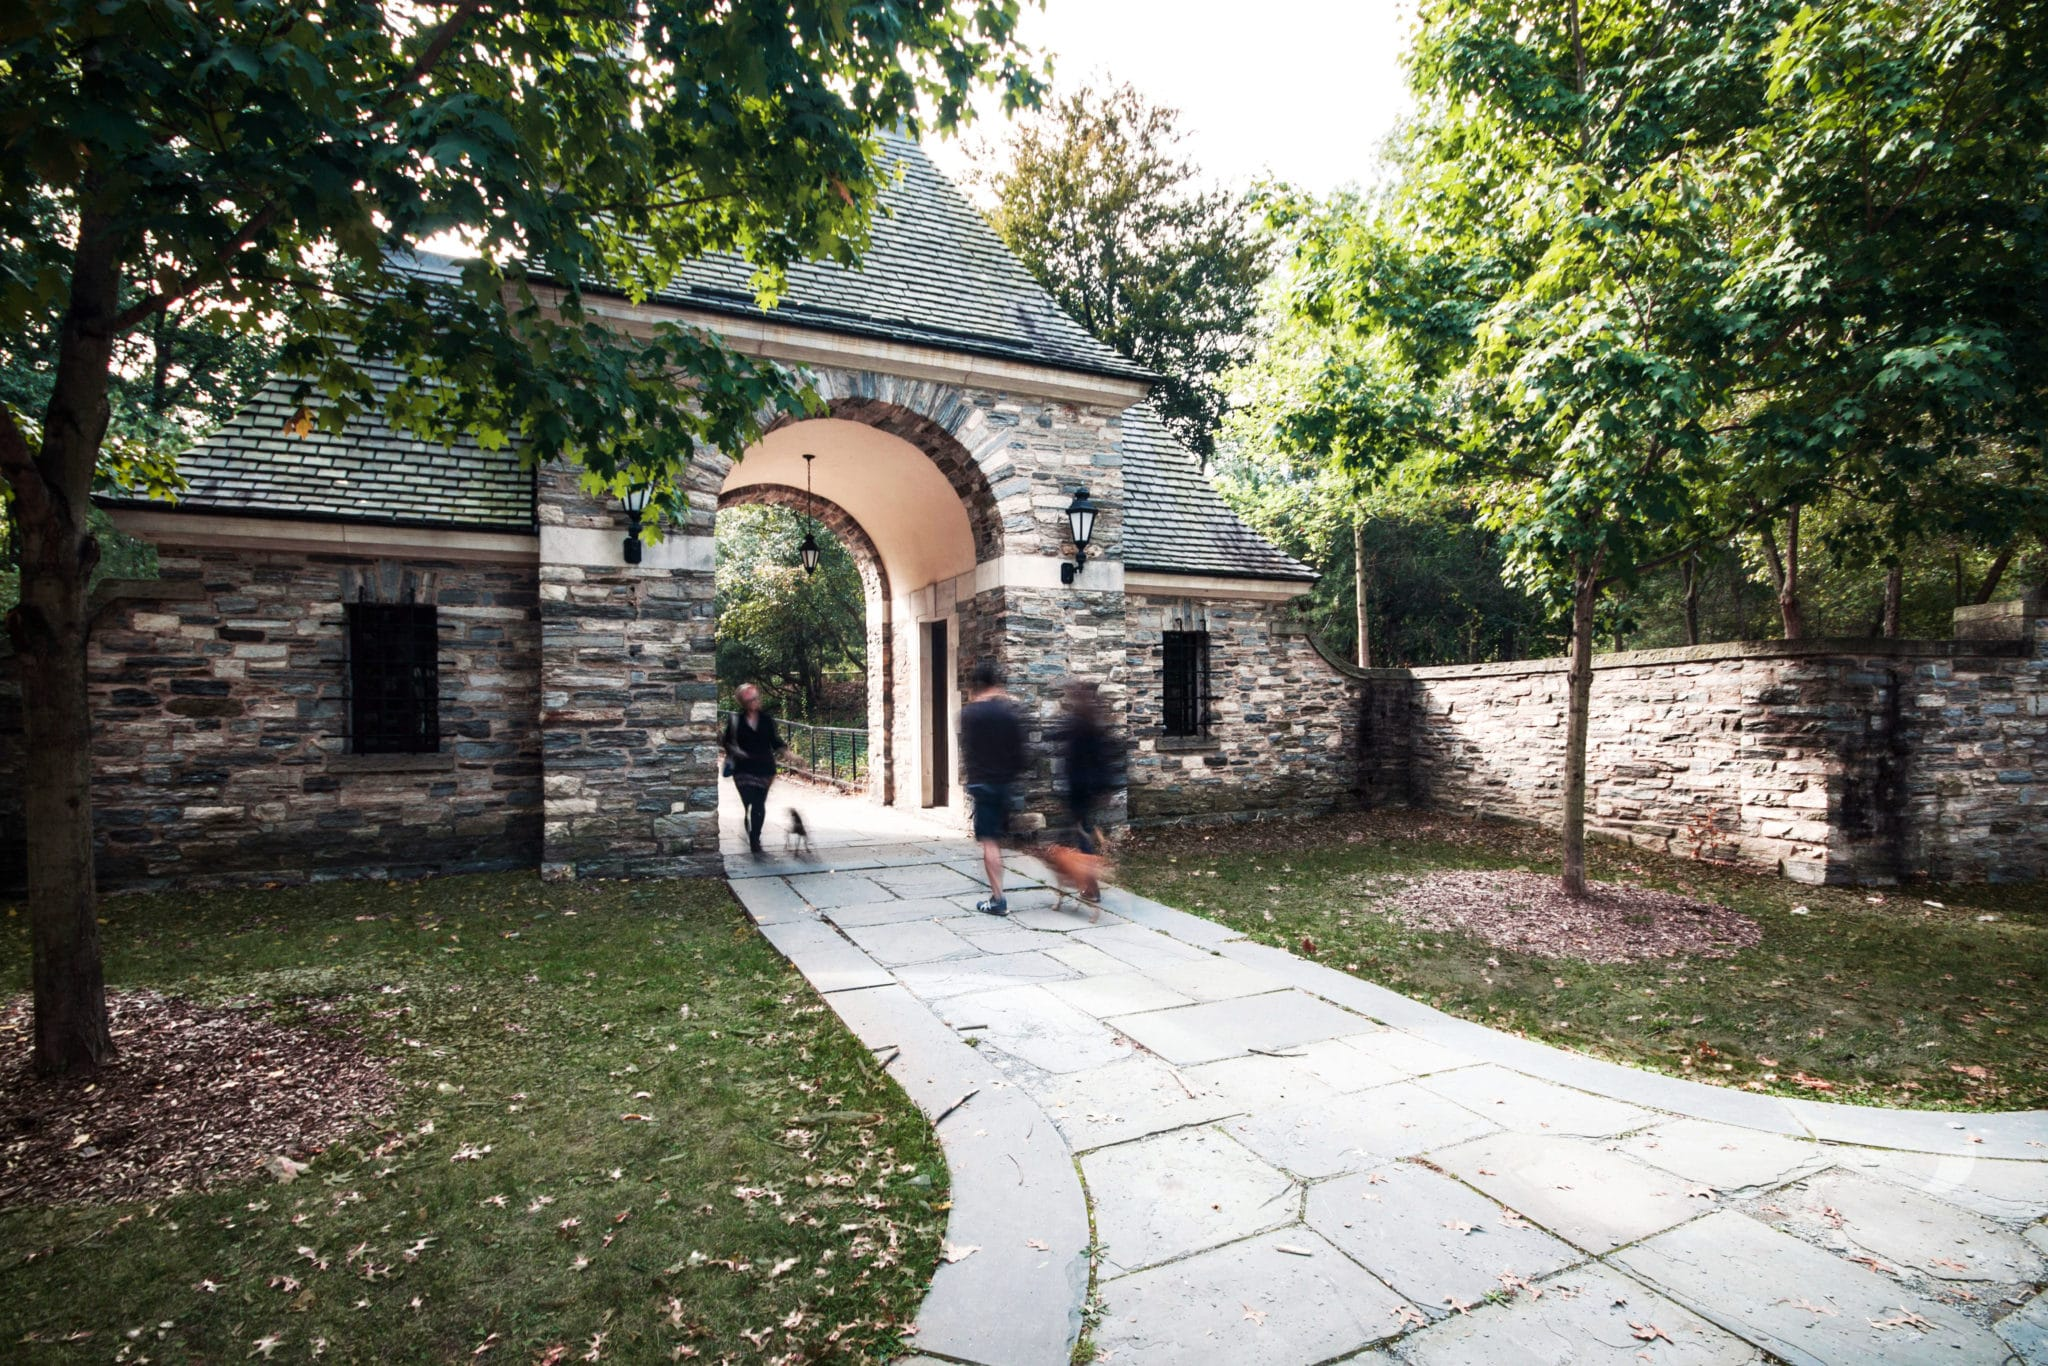 Stone gatehouse to Frick Park with people walking through it